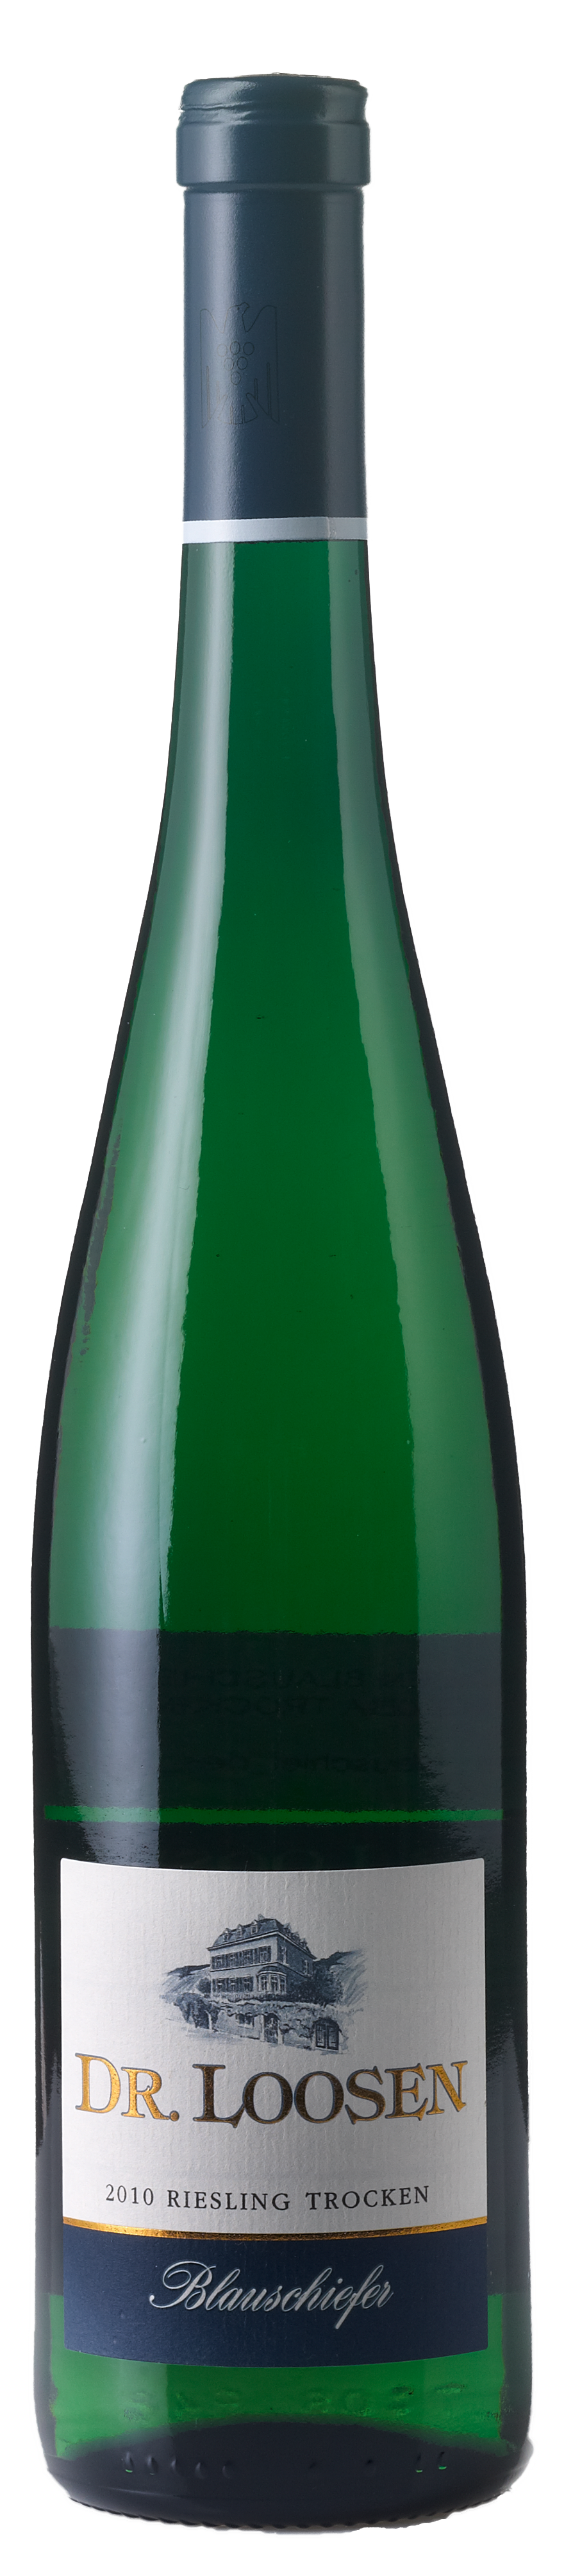 Riesling QbA Blauschiefer